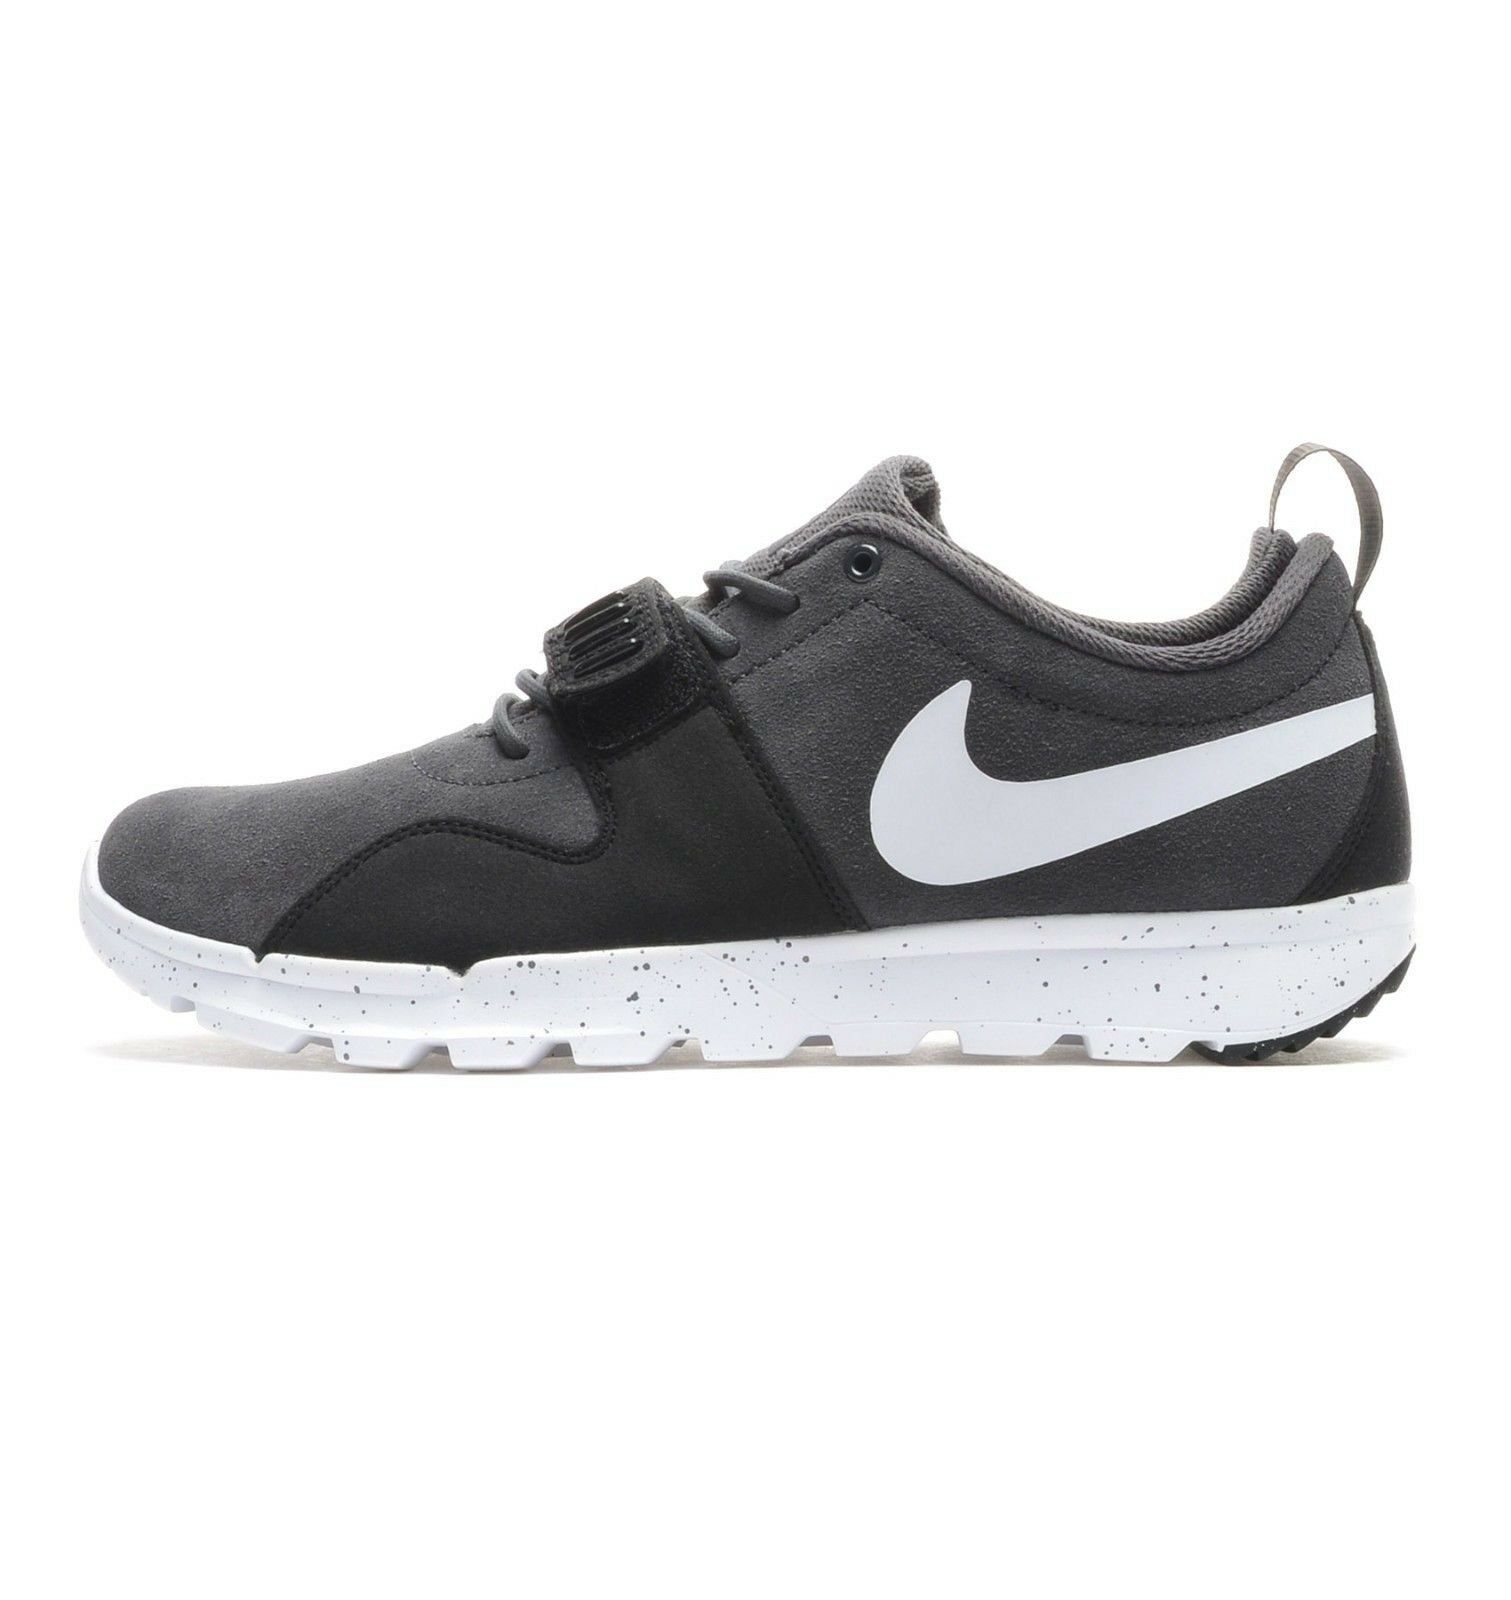 Nike TRAINERENDOR Anthracite White Black  Athletic Discounted (468) Men's shoes